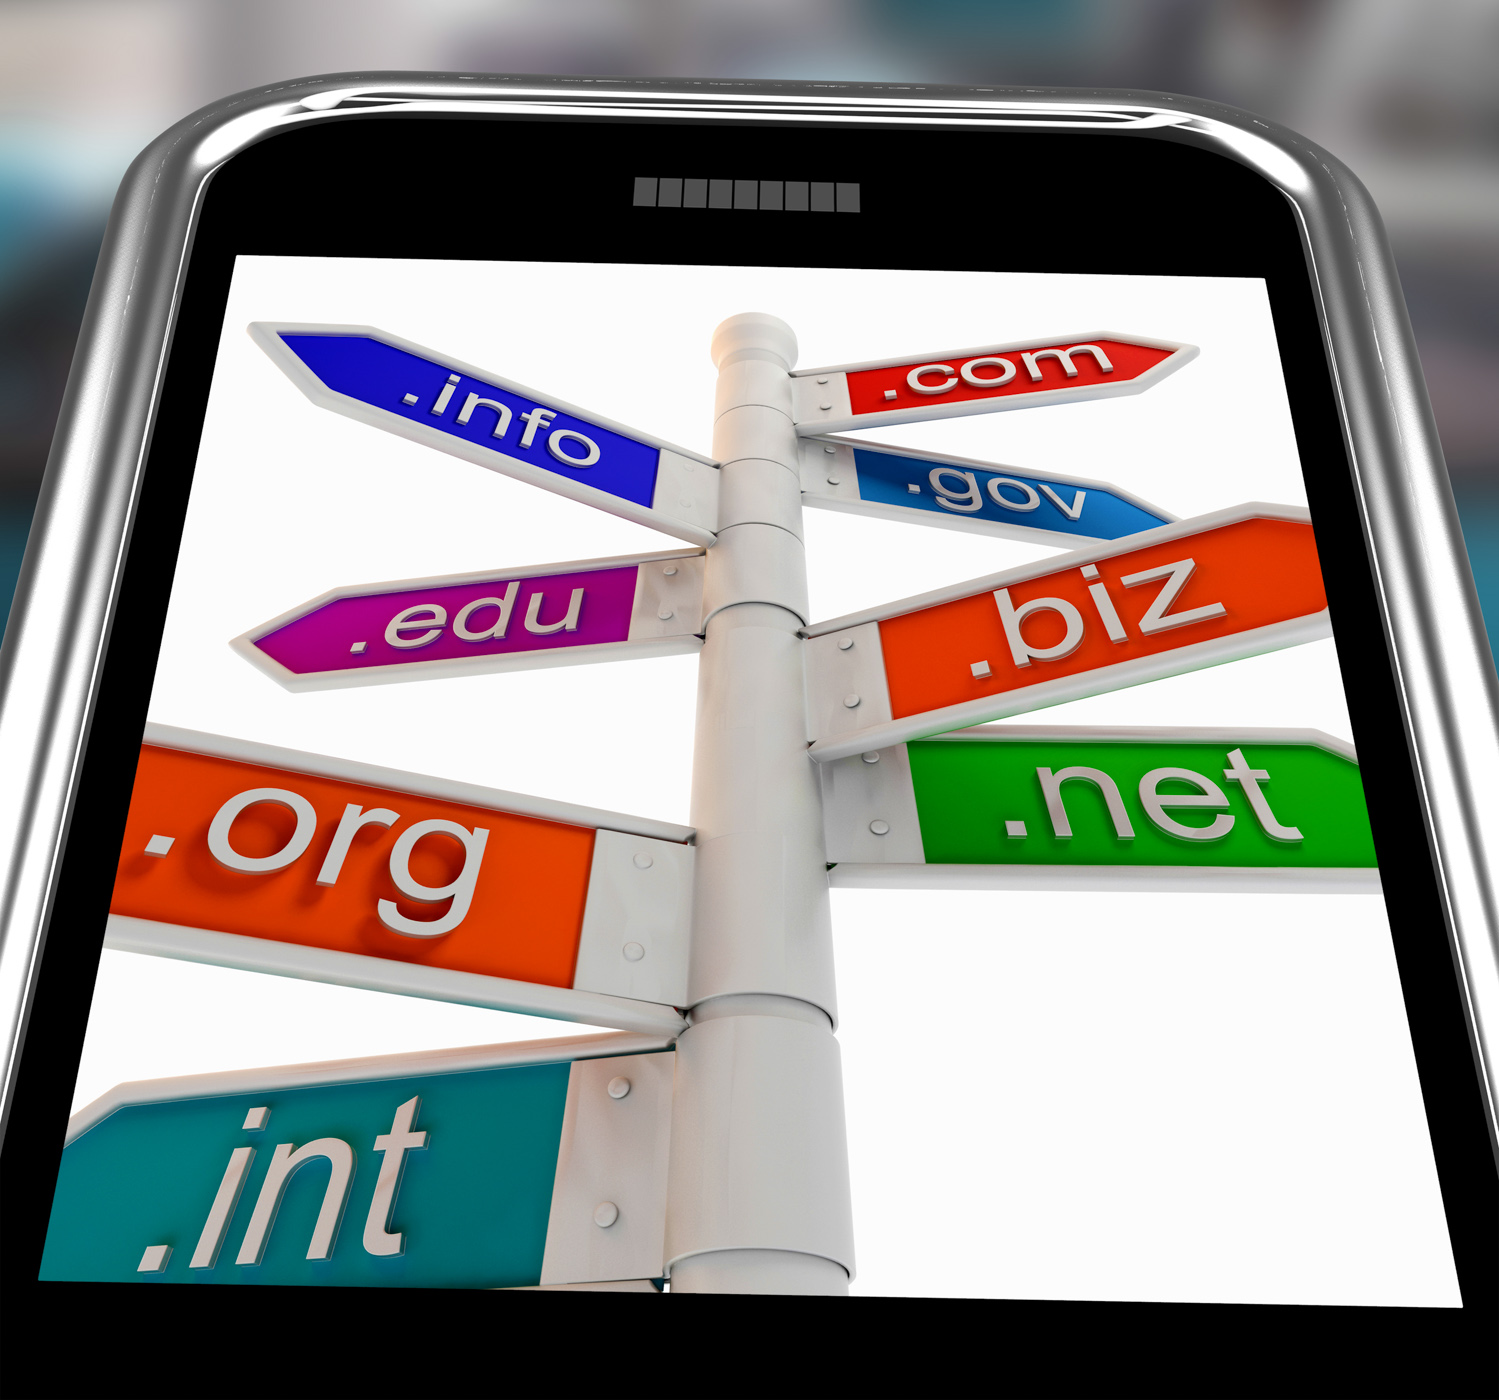 Domains on smartphone shows internet websites photo